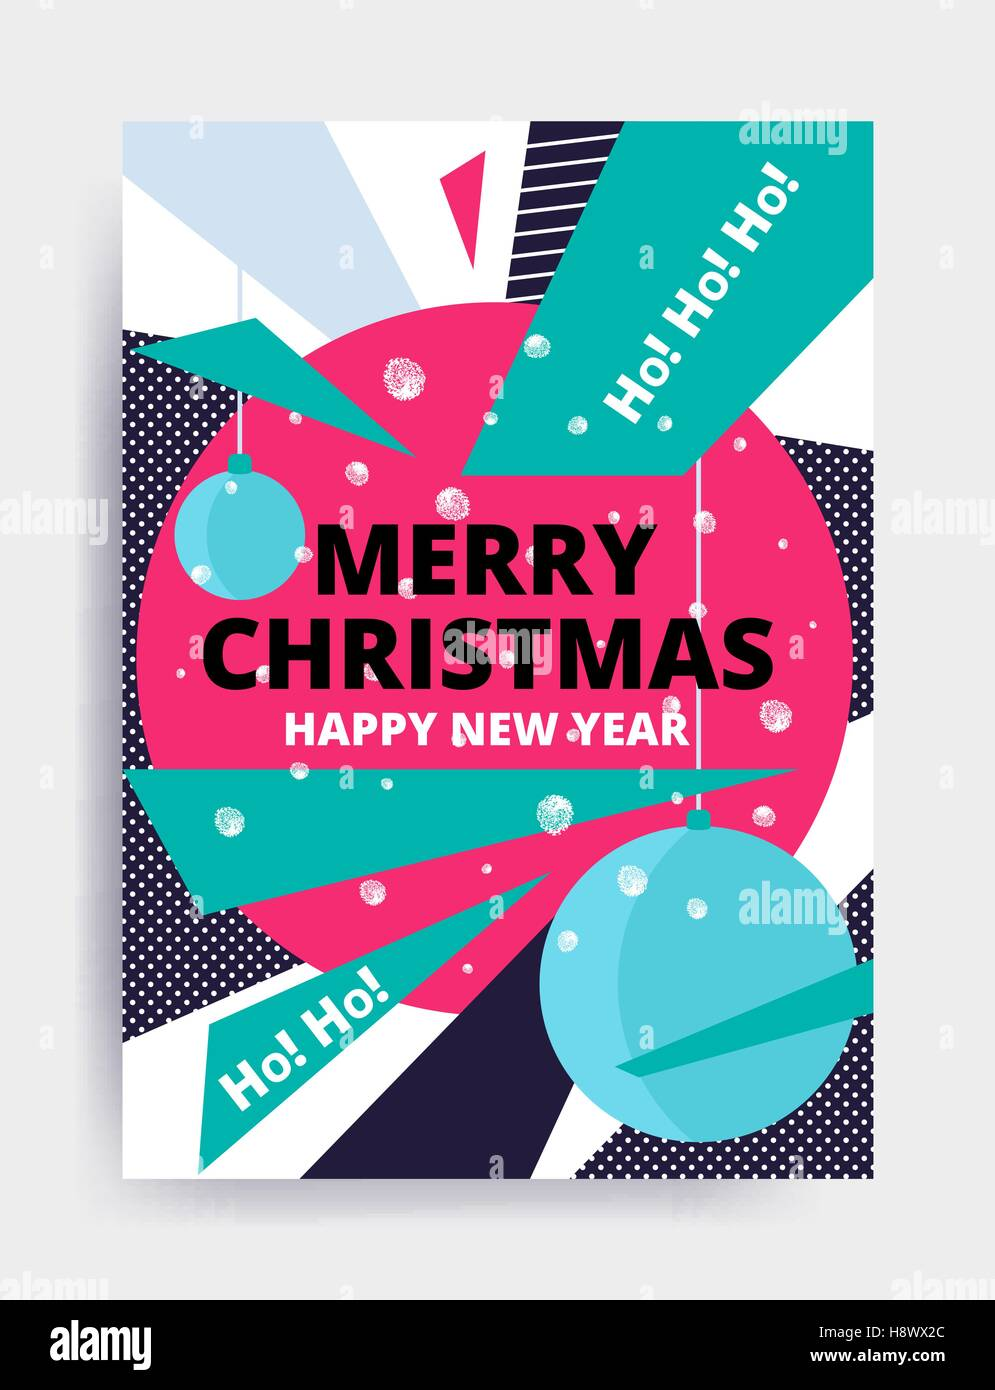 merry christmas new year design eye catching banner template bright colorful vector illustrations for greeting card posters